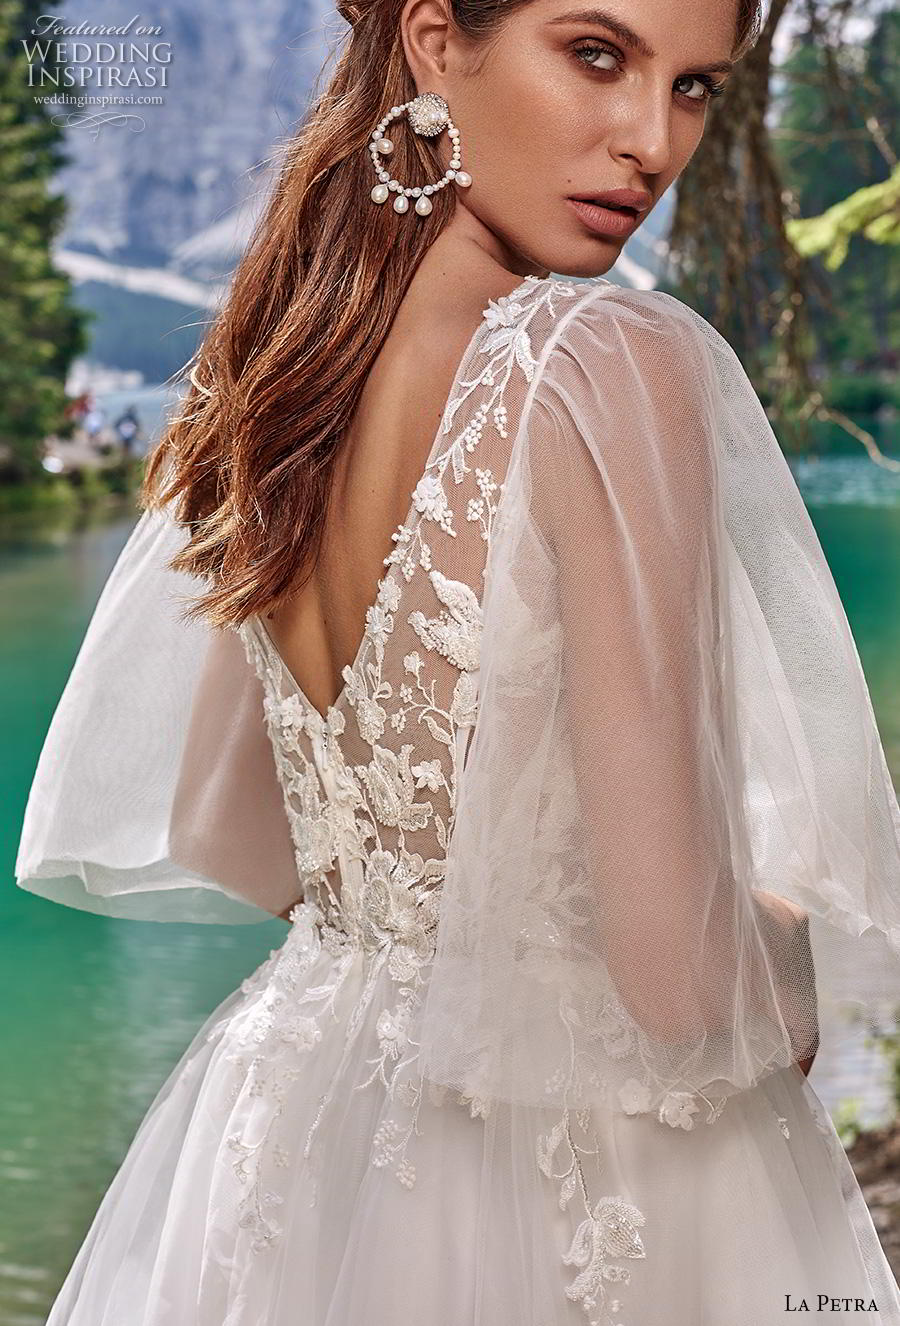 la petra 2020 bridal half flare sleeves illusion jewel plunging sweetheart neckline heavily embellished bodice romantic a  line wedding dress v back chapel train (7) zbv